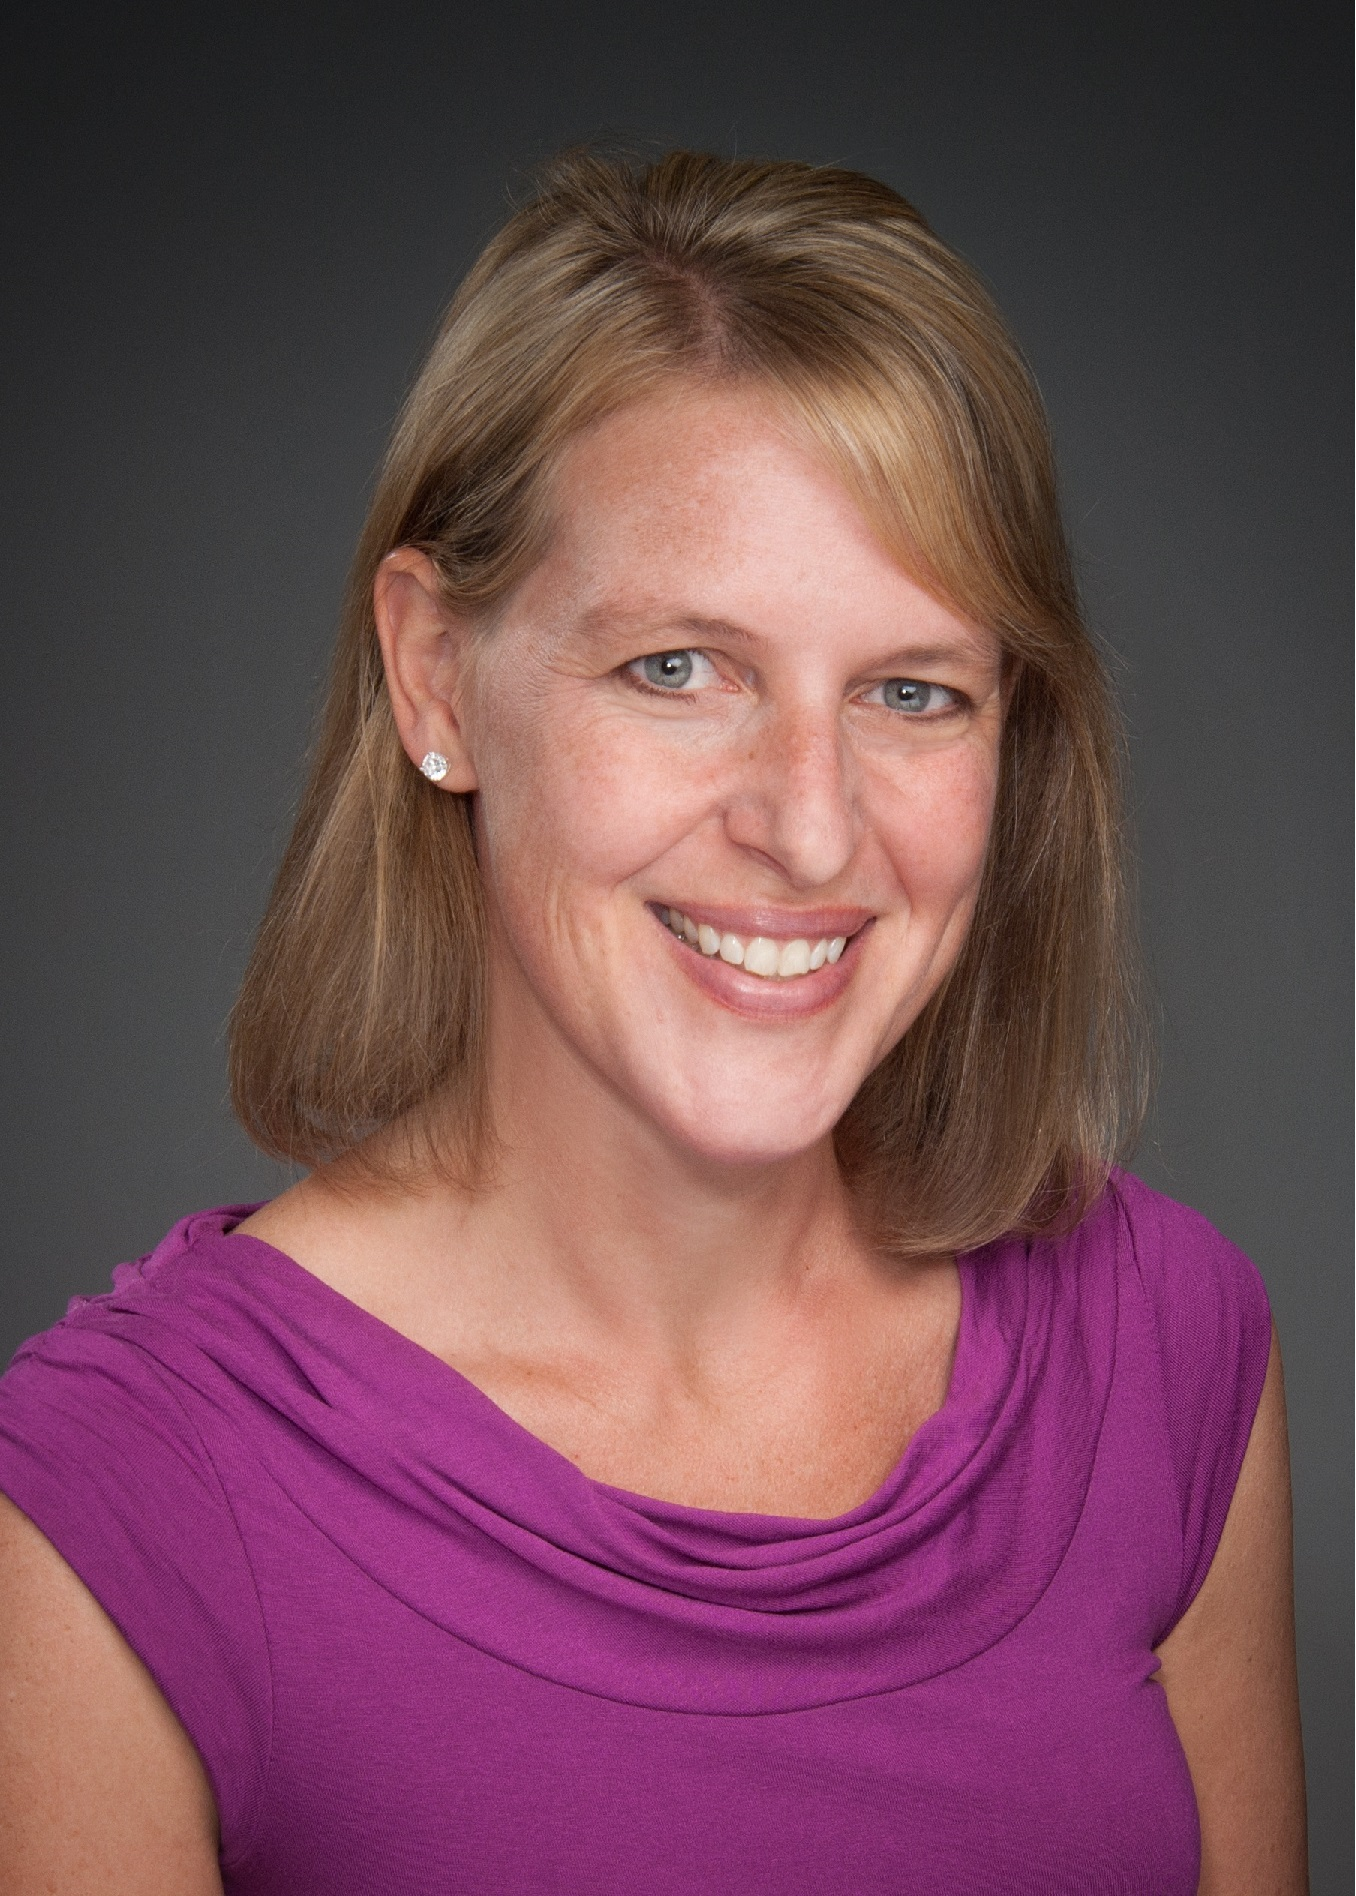 Heather M. Conklin, Ph.D. - Candidate for Member-at-Large